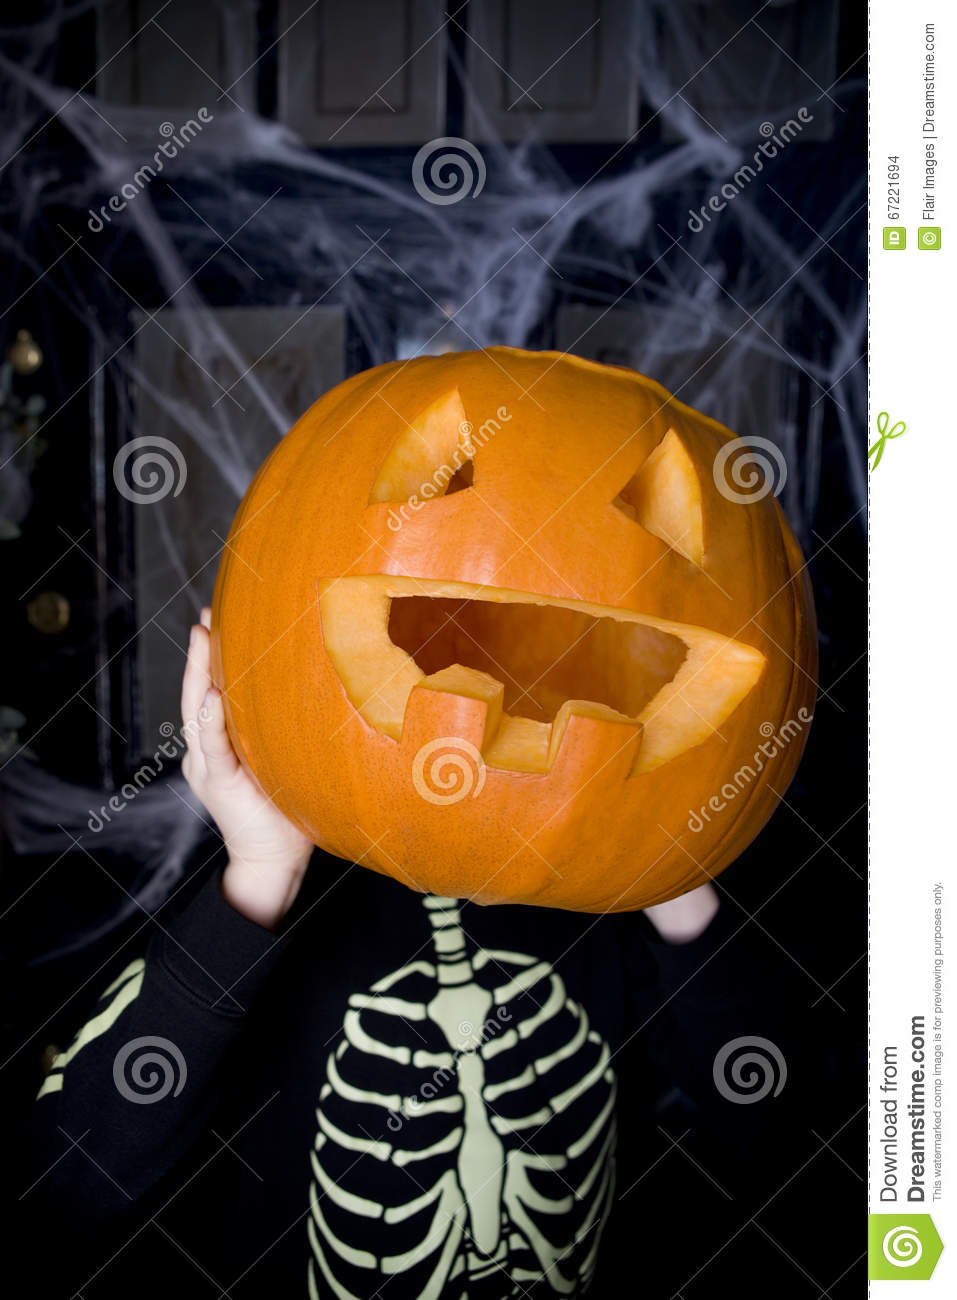 Child in a skeleton costume at a Hallowe en party, holding a pumpkin with a carved face